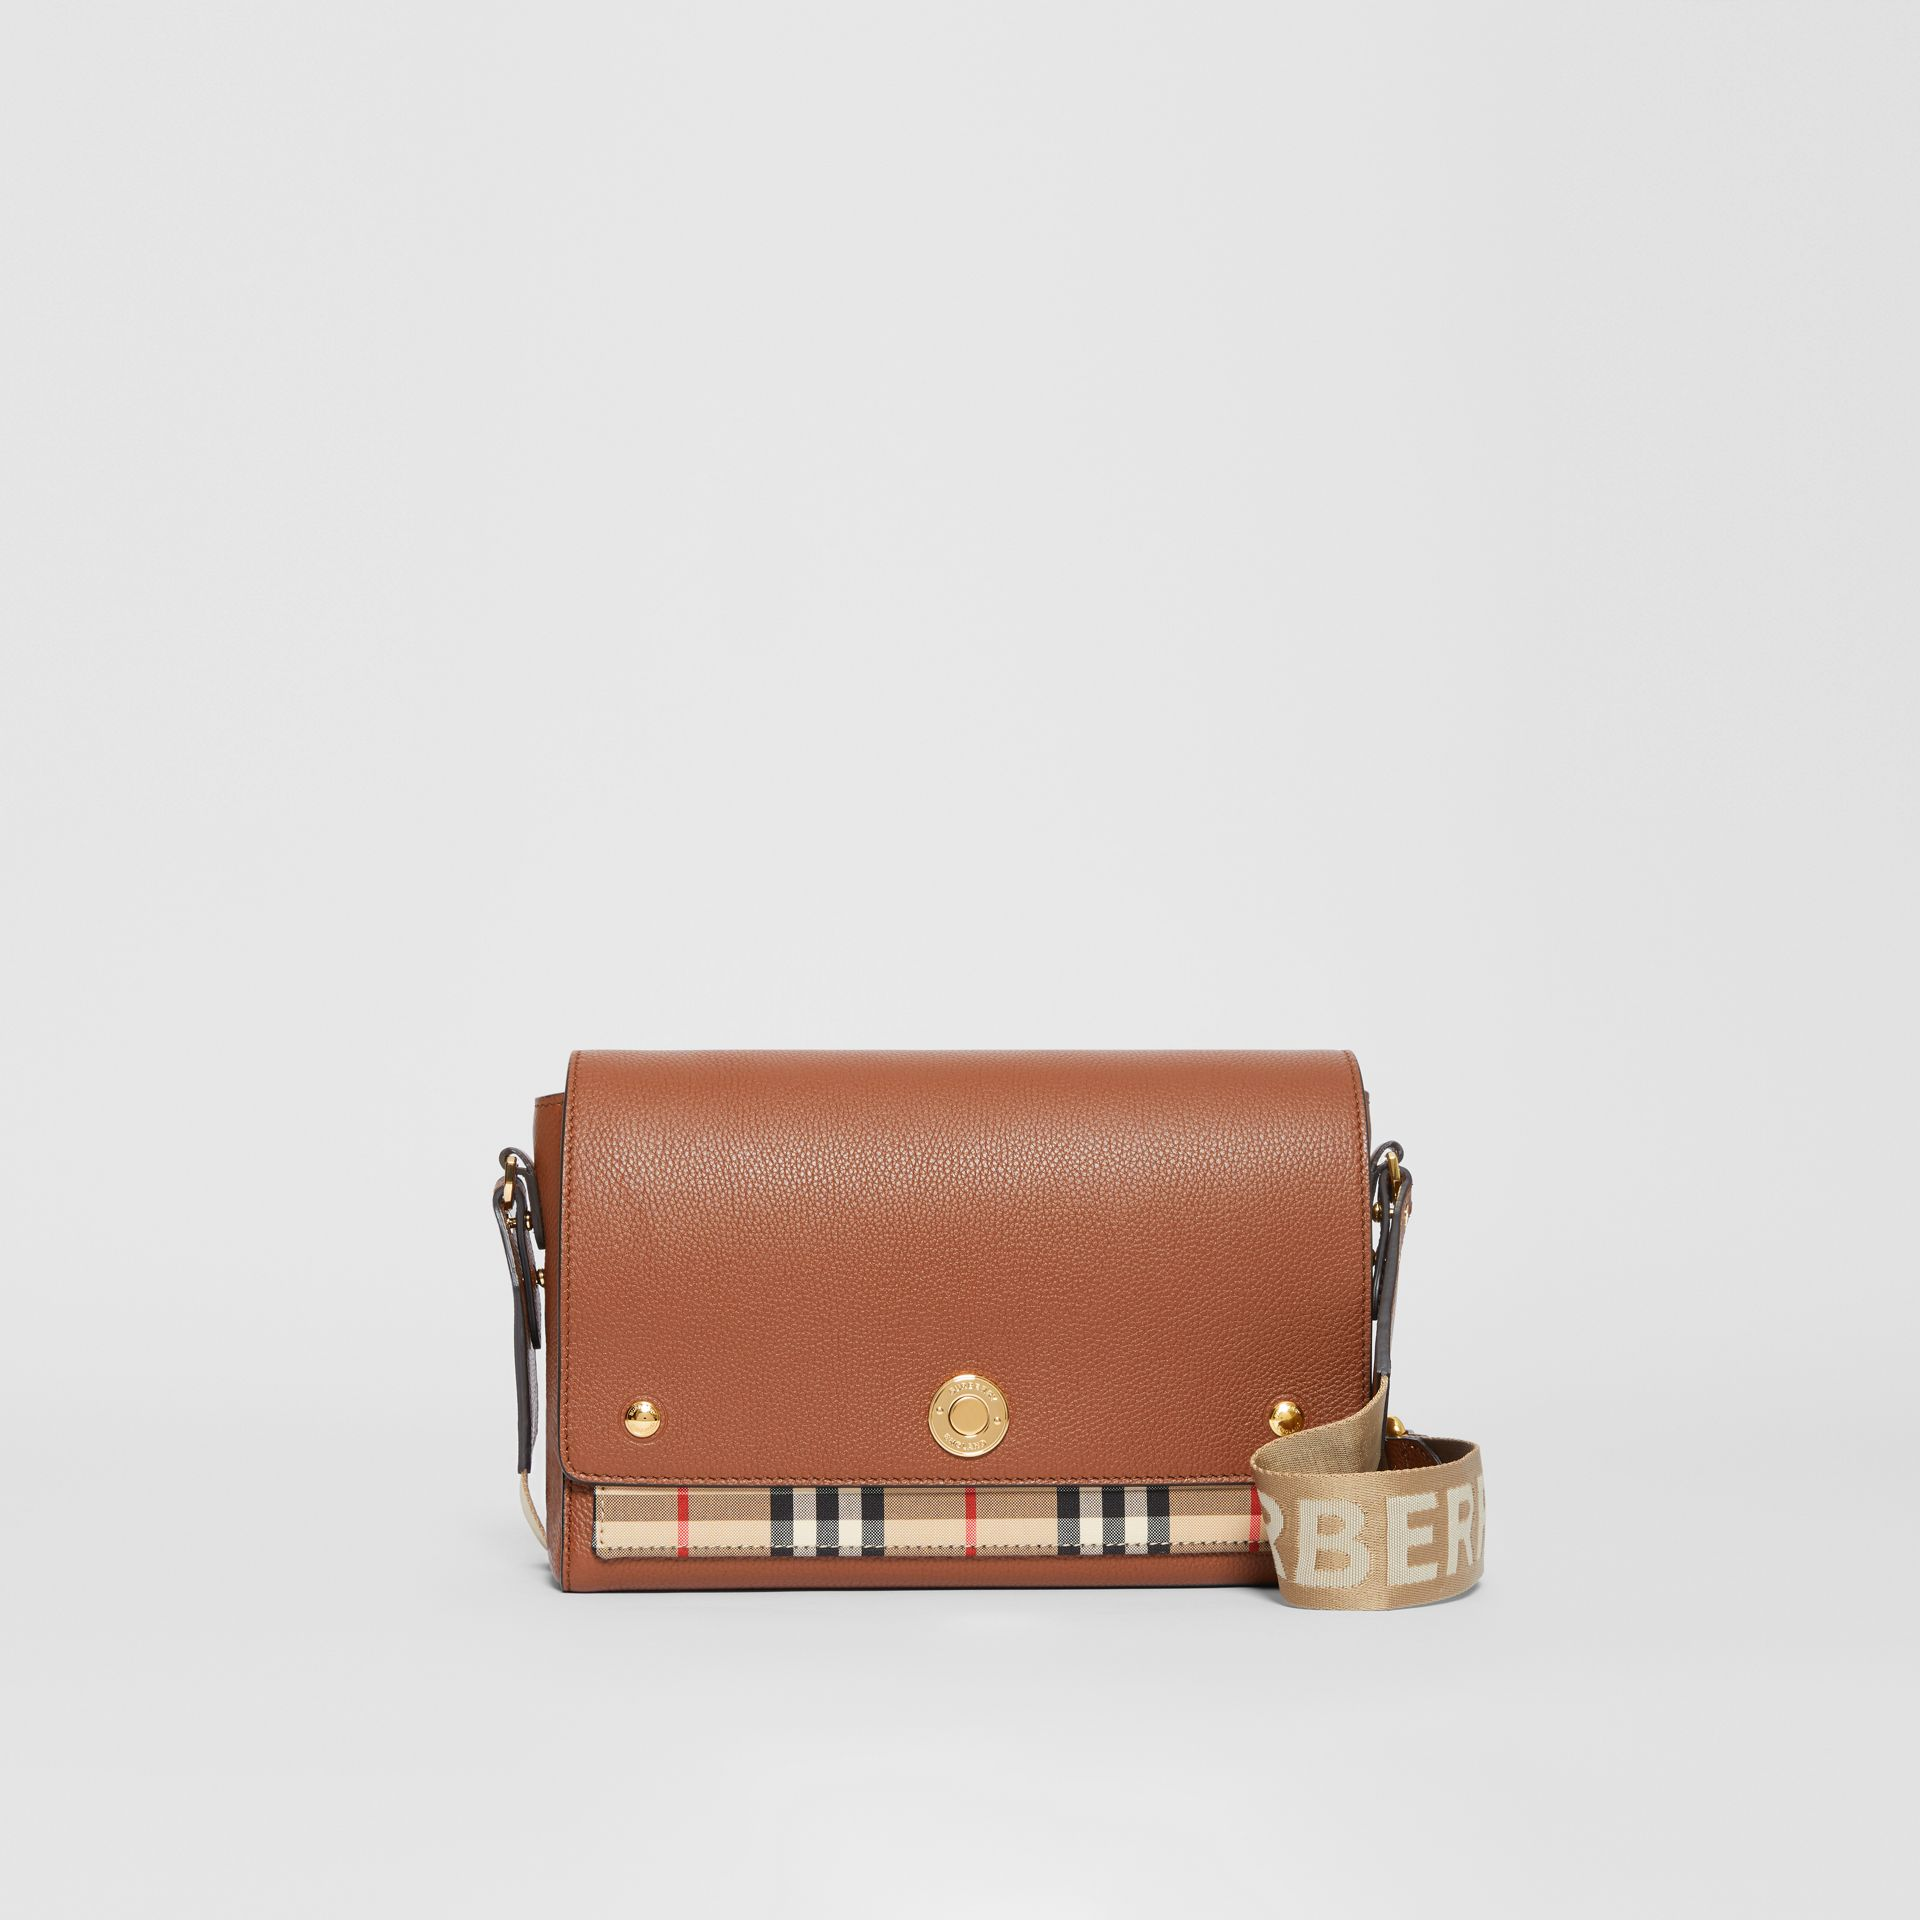 Leather and Vintage Check Note Crossbody Bag in Tan - Women | Burberry United Kingdom - gallery image 0